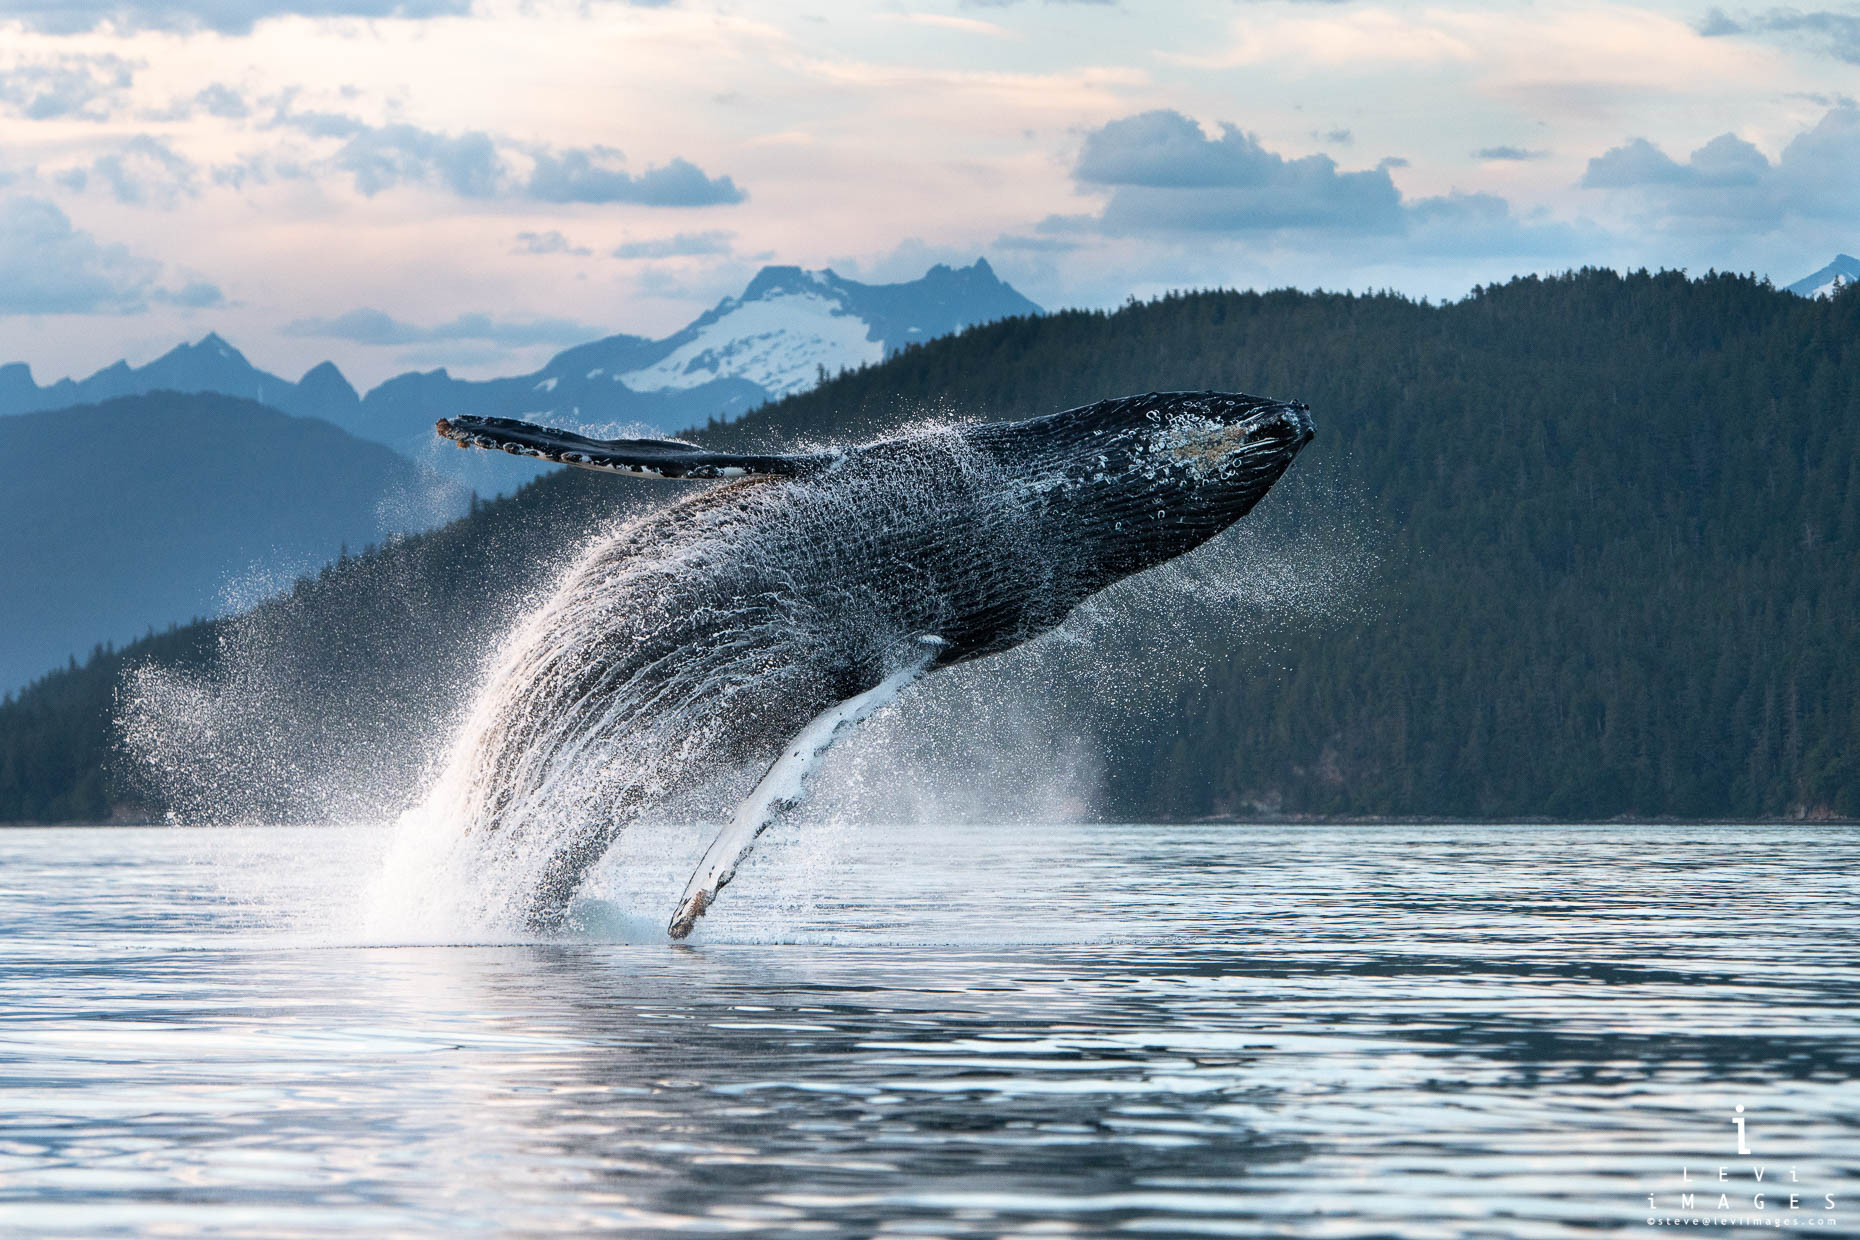 A humpback whale (Megaptera novaeangliae) breaches at dusk in front of snow covered mountains. Inside Passage, Alaska